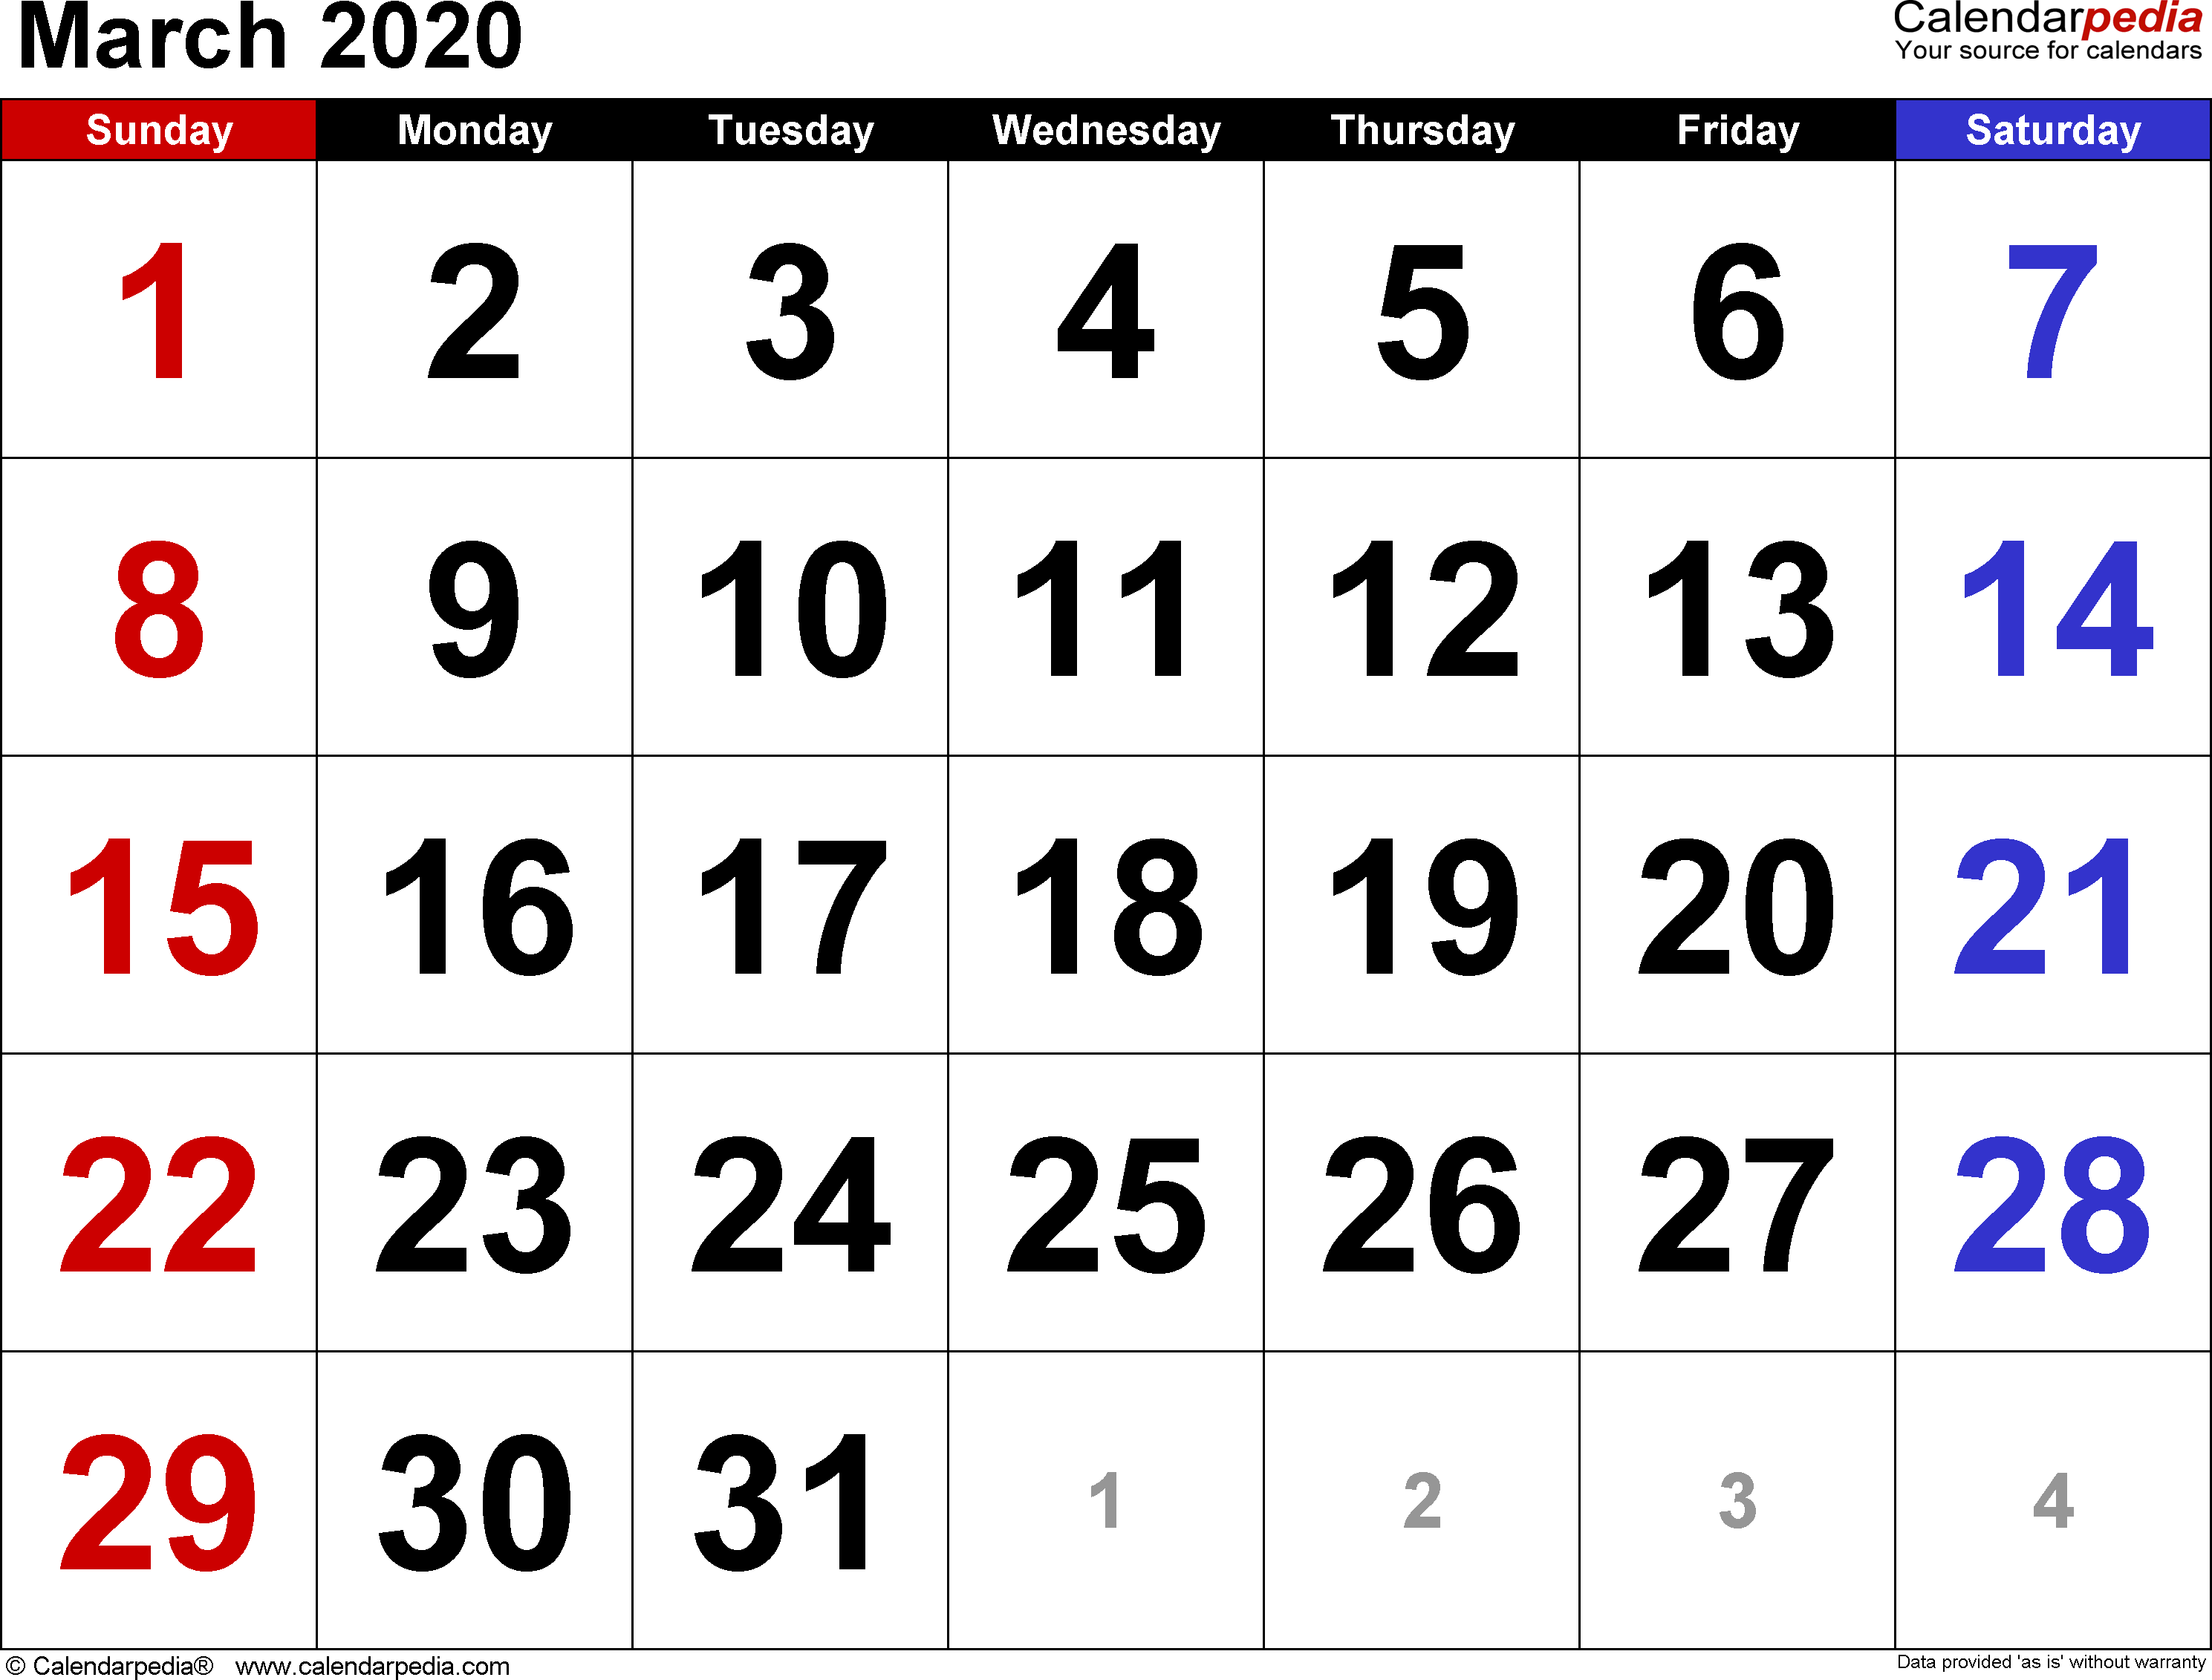 Mar 2020 Calendar March 2020 Calendars for Word, Excel & PDF